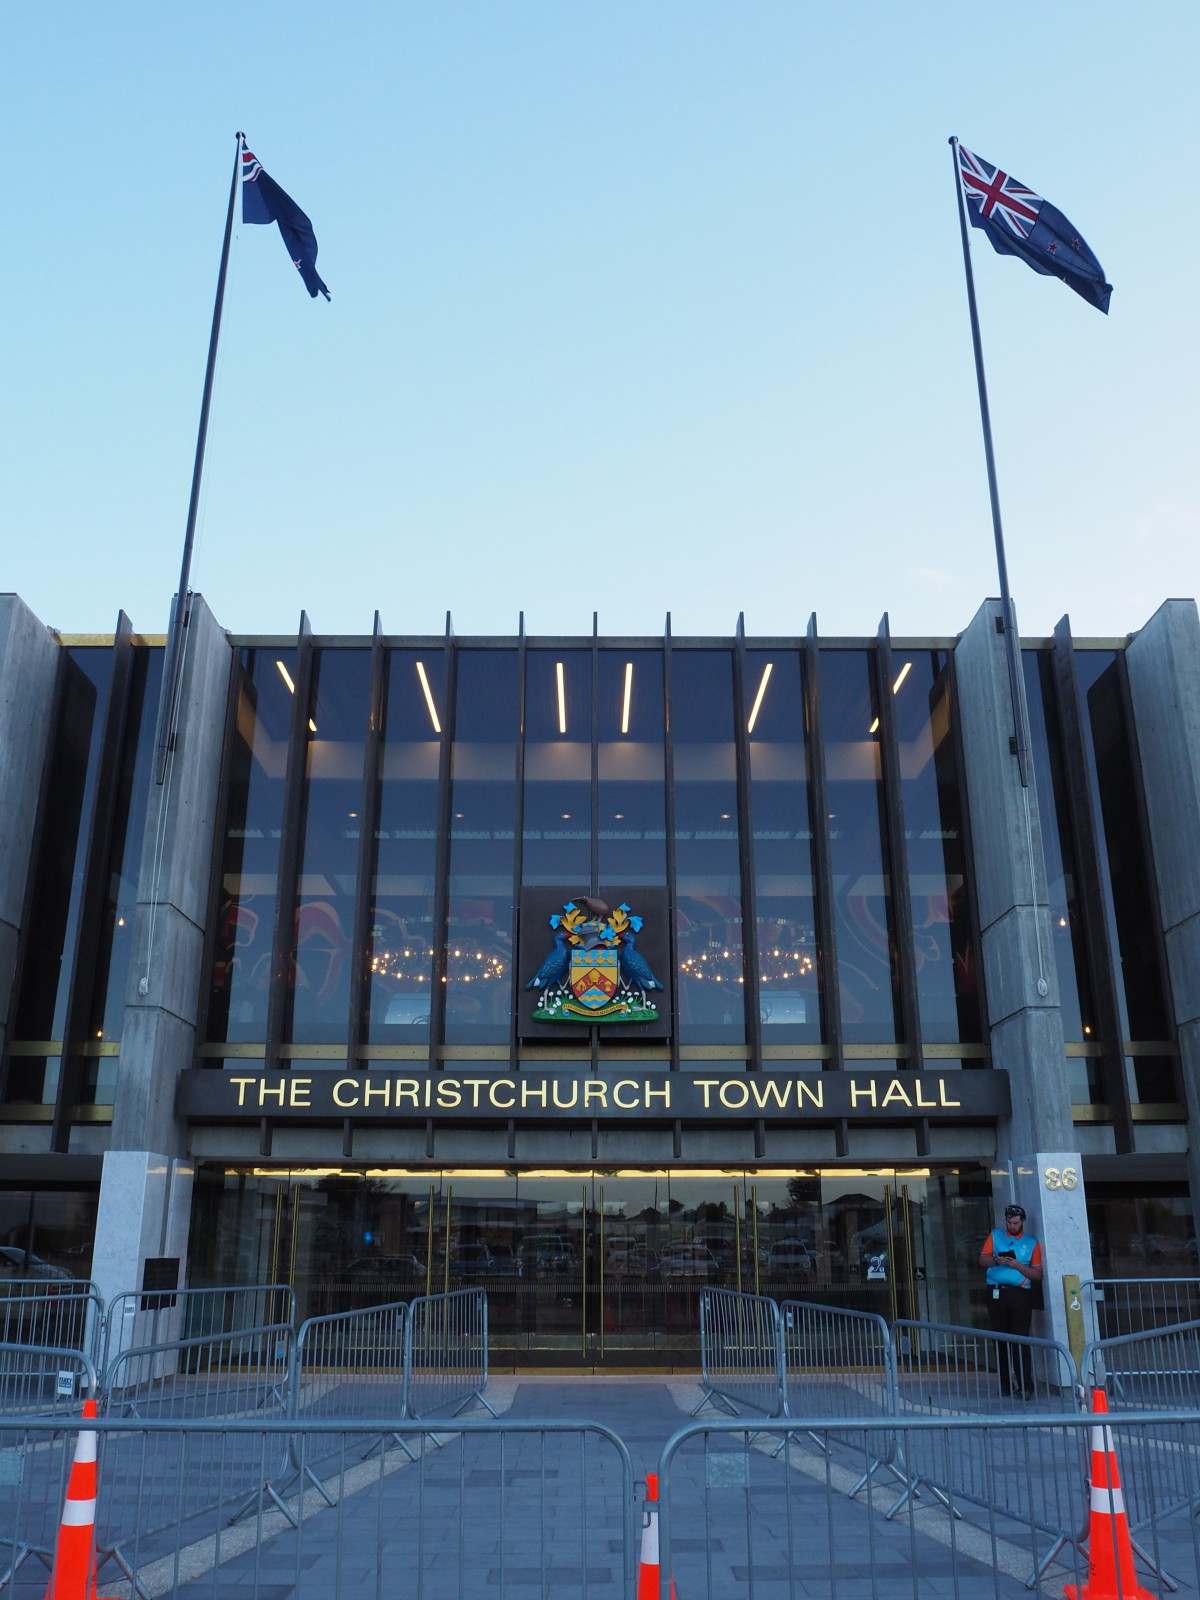 Christchurch Town Hall. 22 February 2019. Christchurch City Libraries collection. https://discoverywall.nz/media/71651